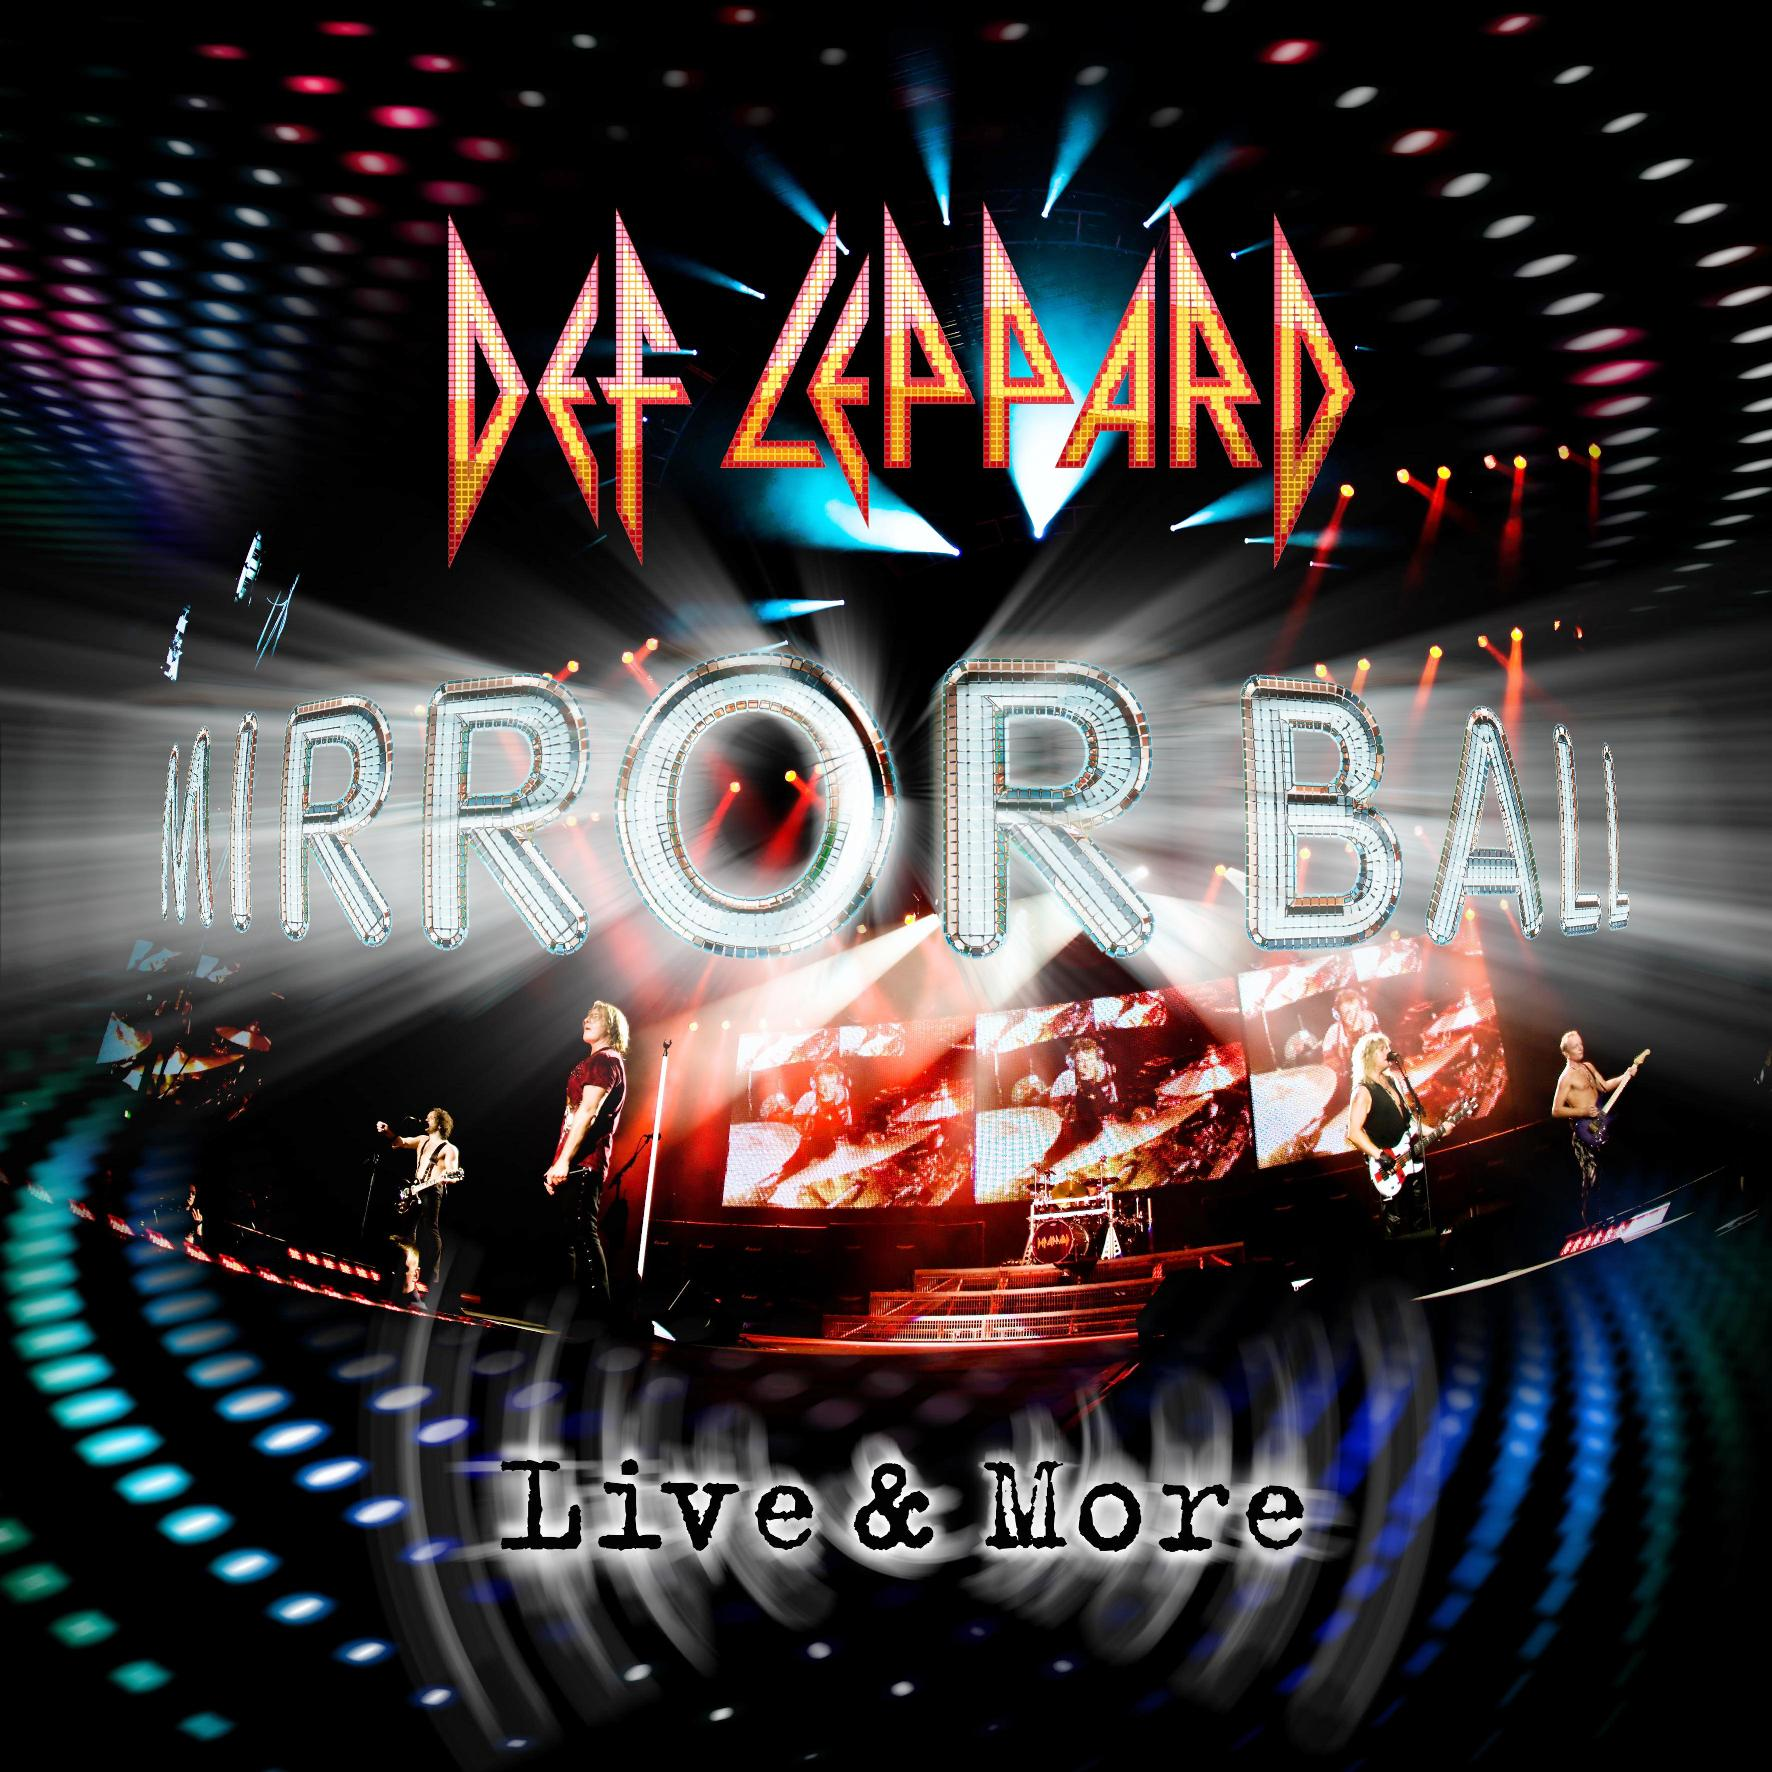 Def Leppard, Mirrorball, Live & More, Cover